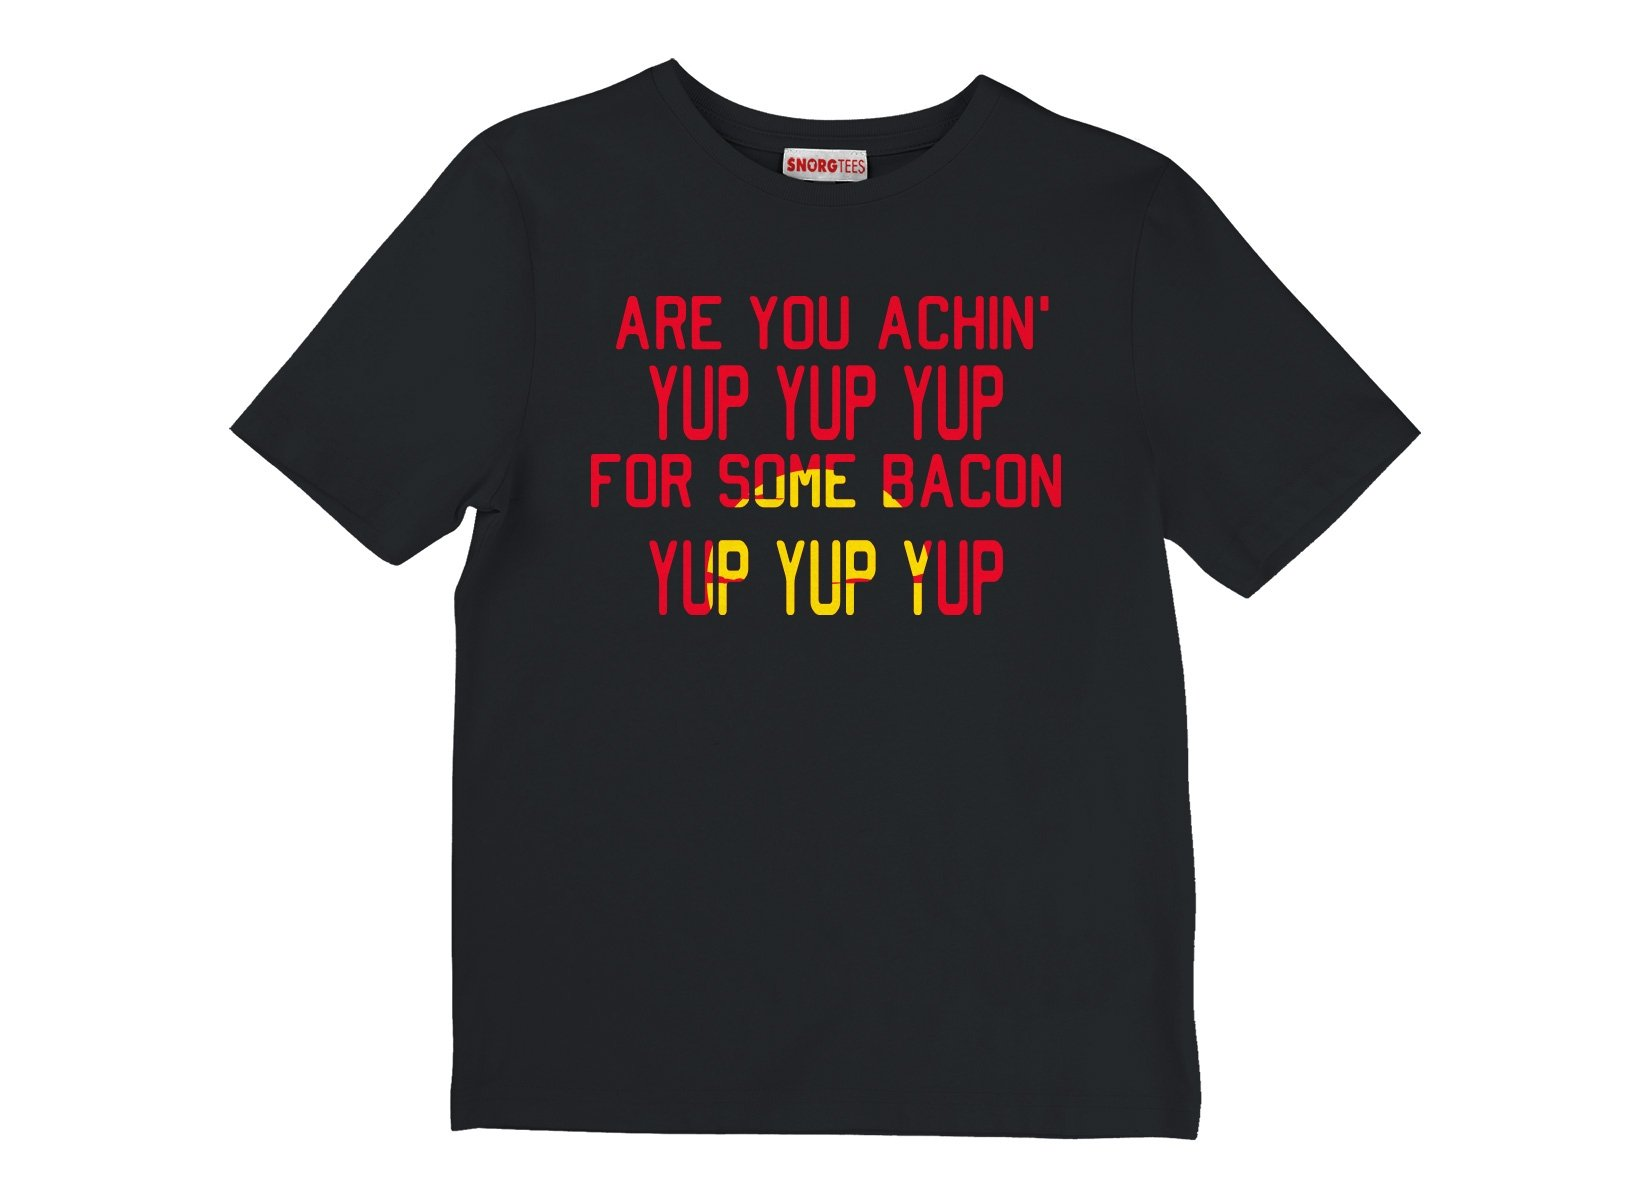 Are You Achin' For Some Bacon? on Kids T-Shirt